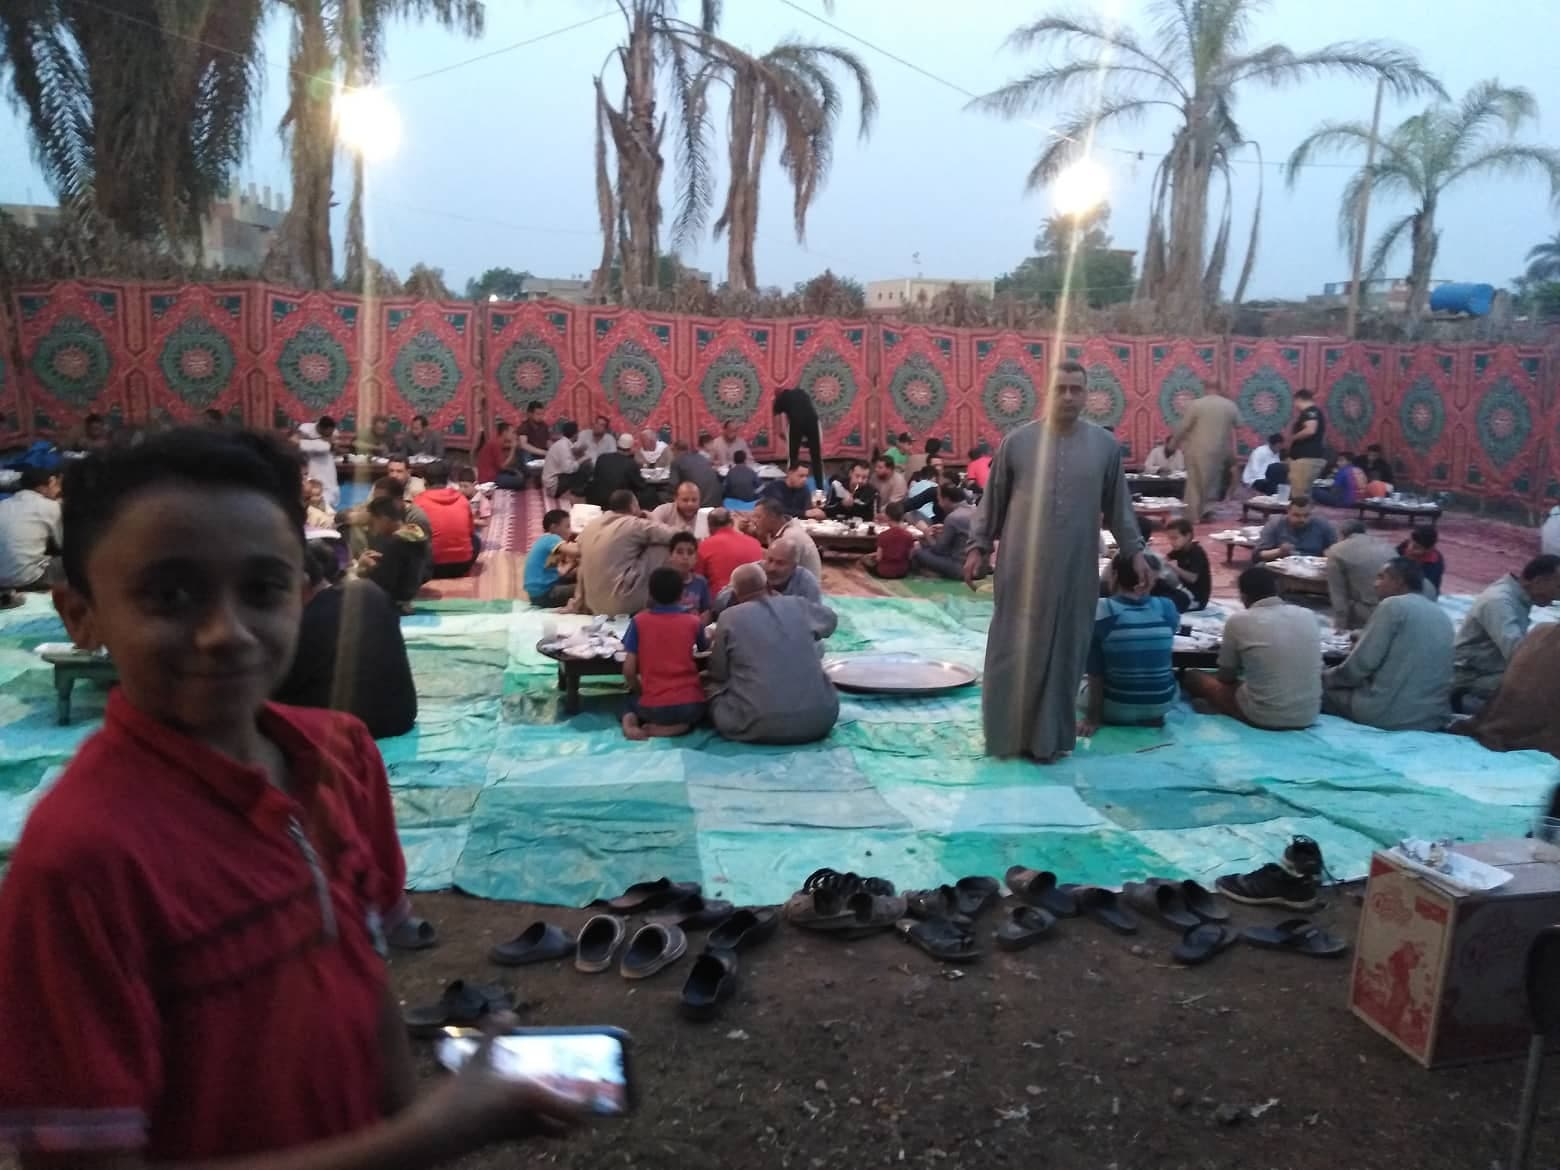 Egypt: Qubti Brothers in Aftar party